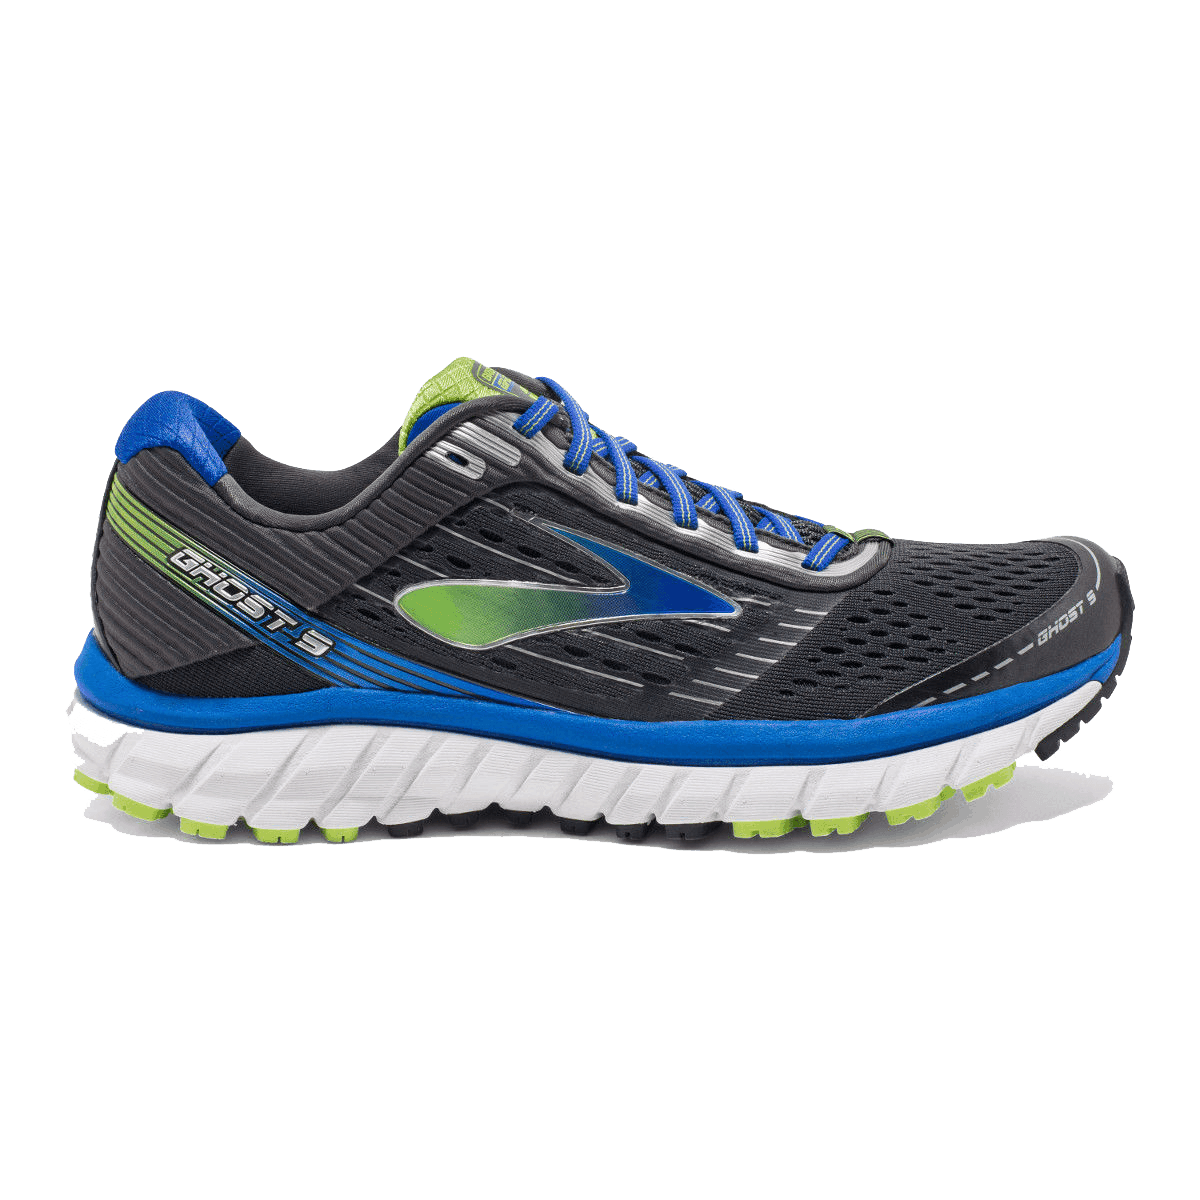 The Brooks Ghost 9 running shoe has been one of the most popular of their line of Ghost running shoes. We dissect what's the difference: Brooks Ghost 9 vs Saucony Ride 9